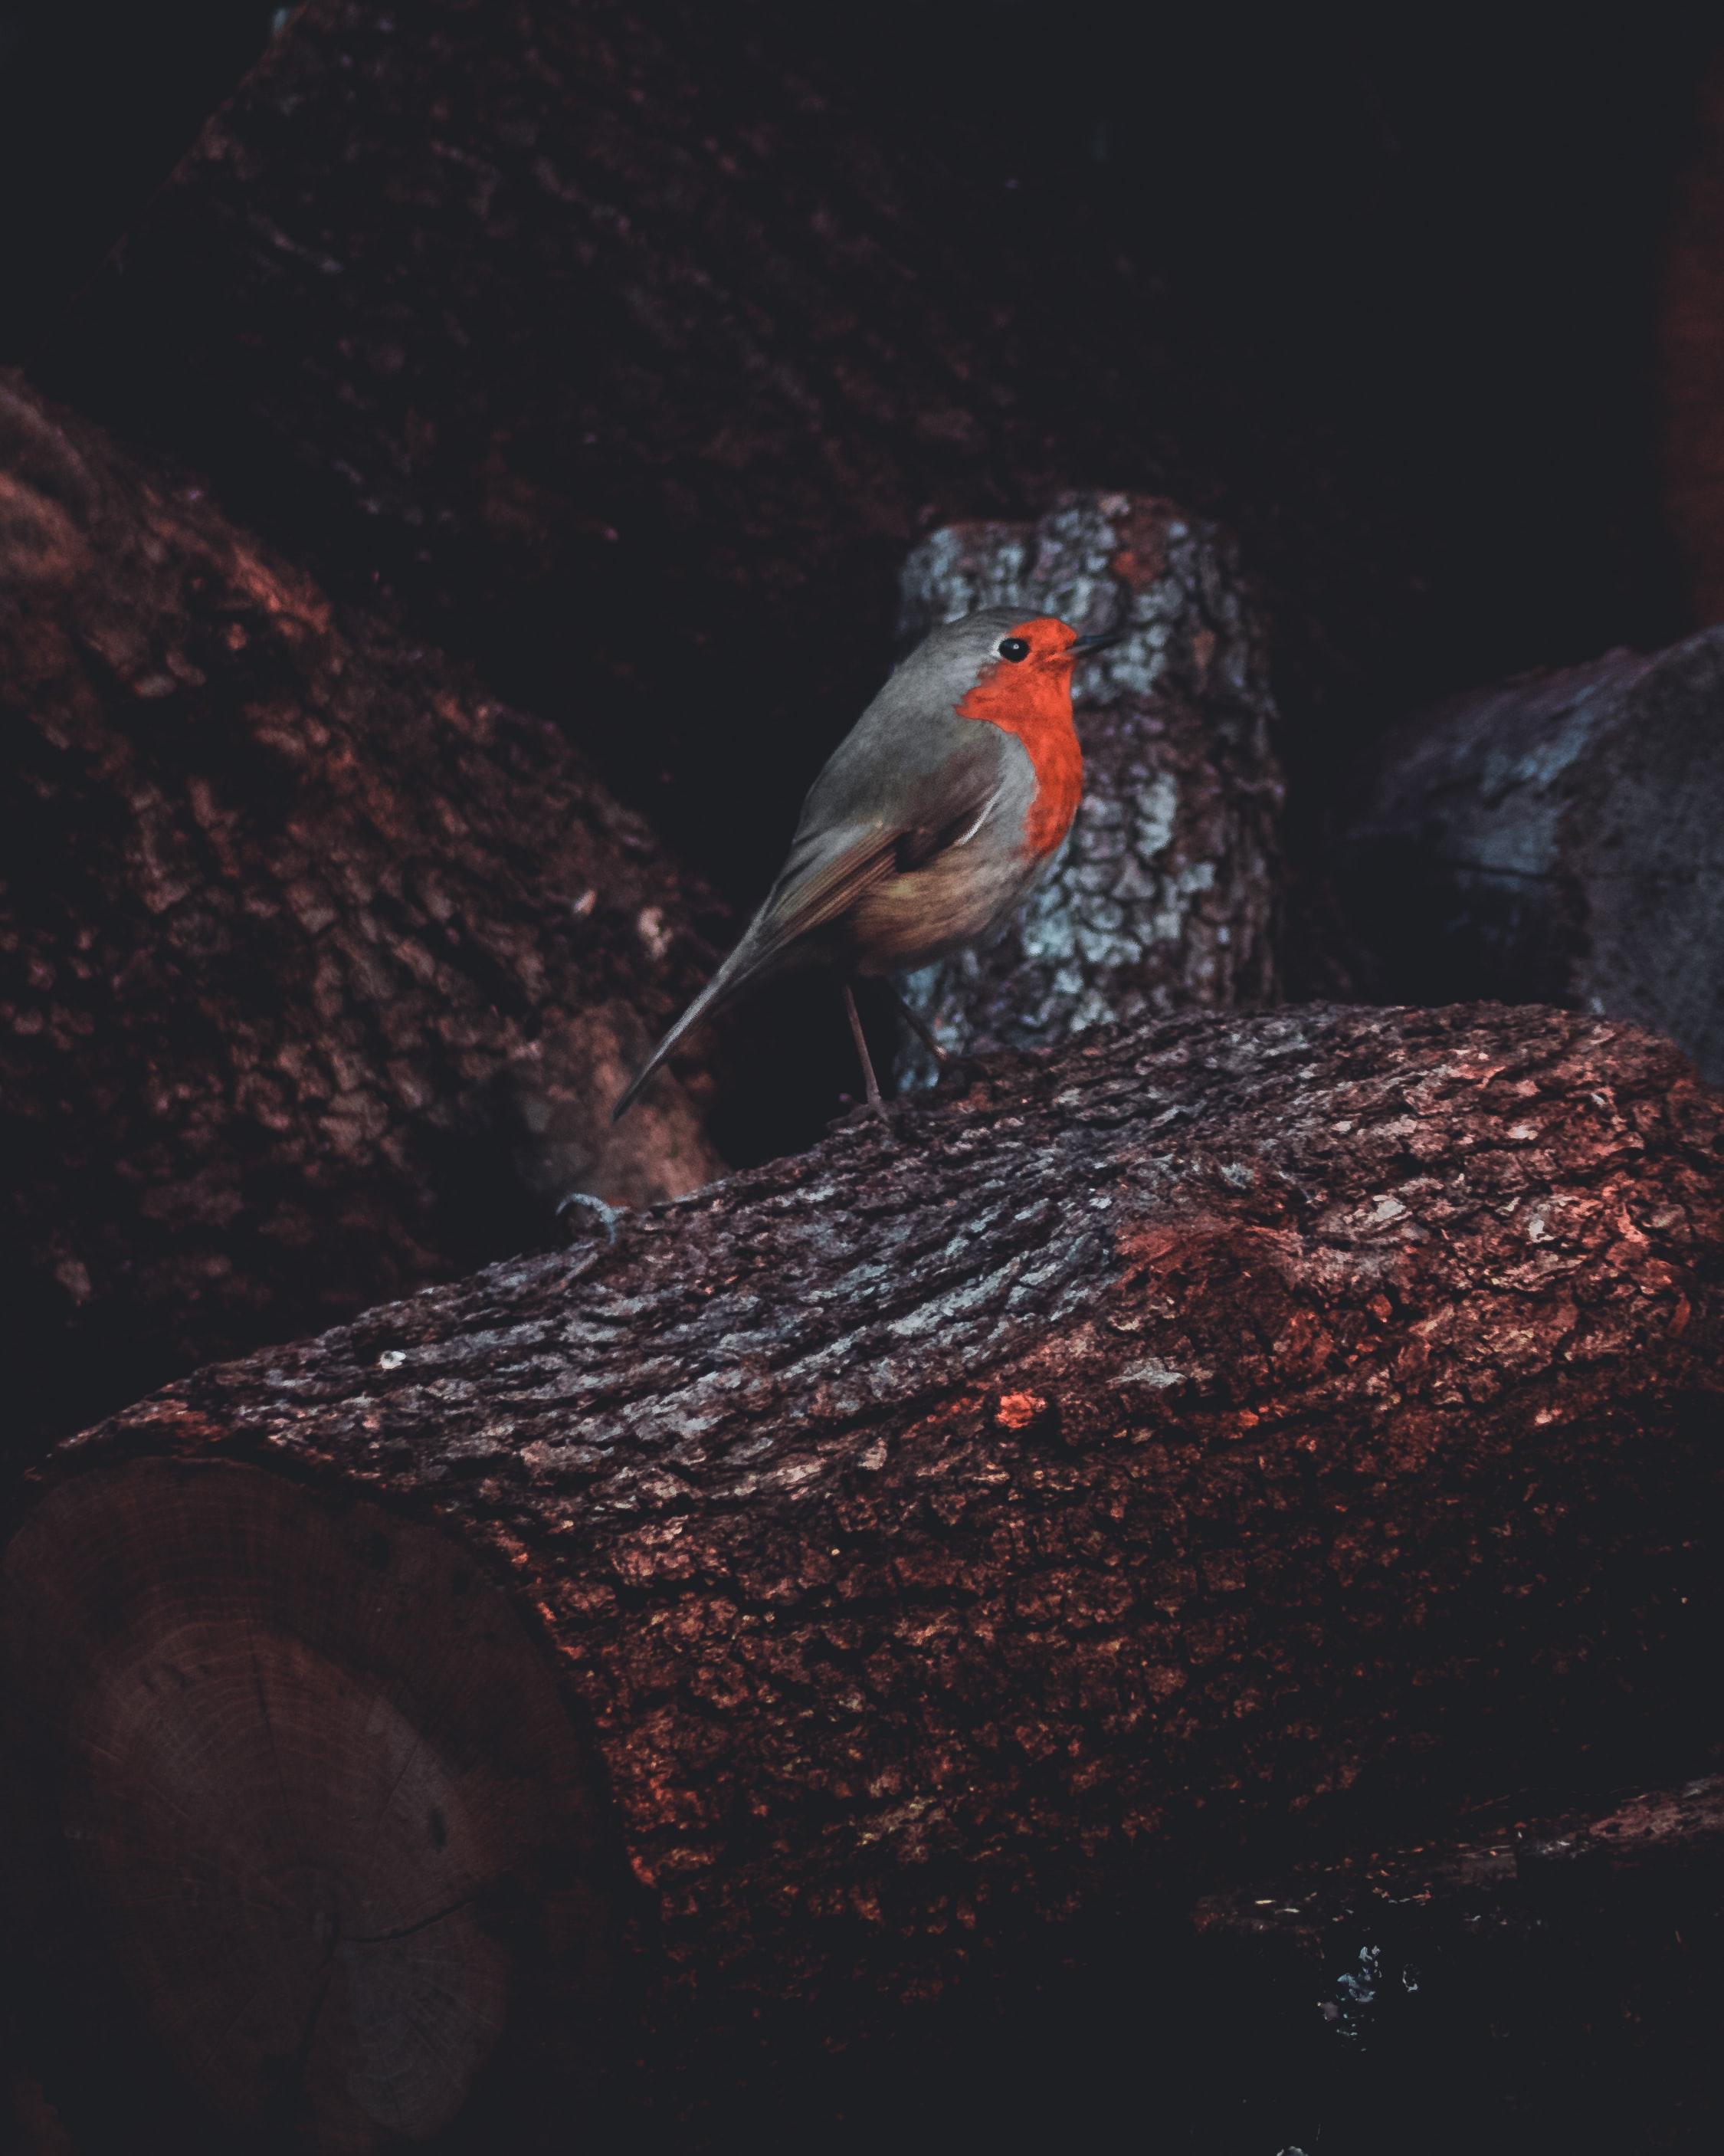 gray and orange bird on tree